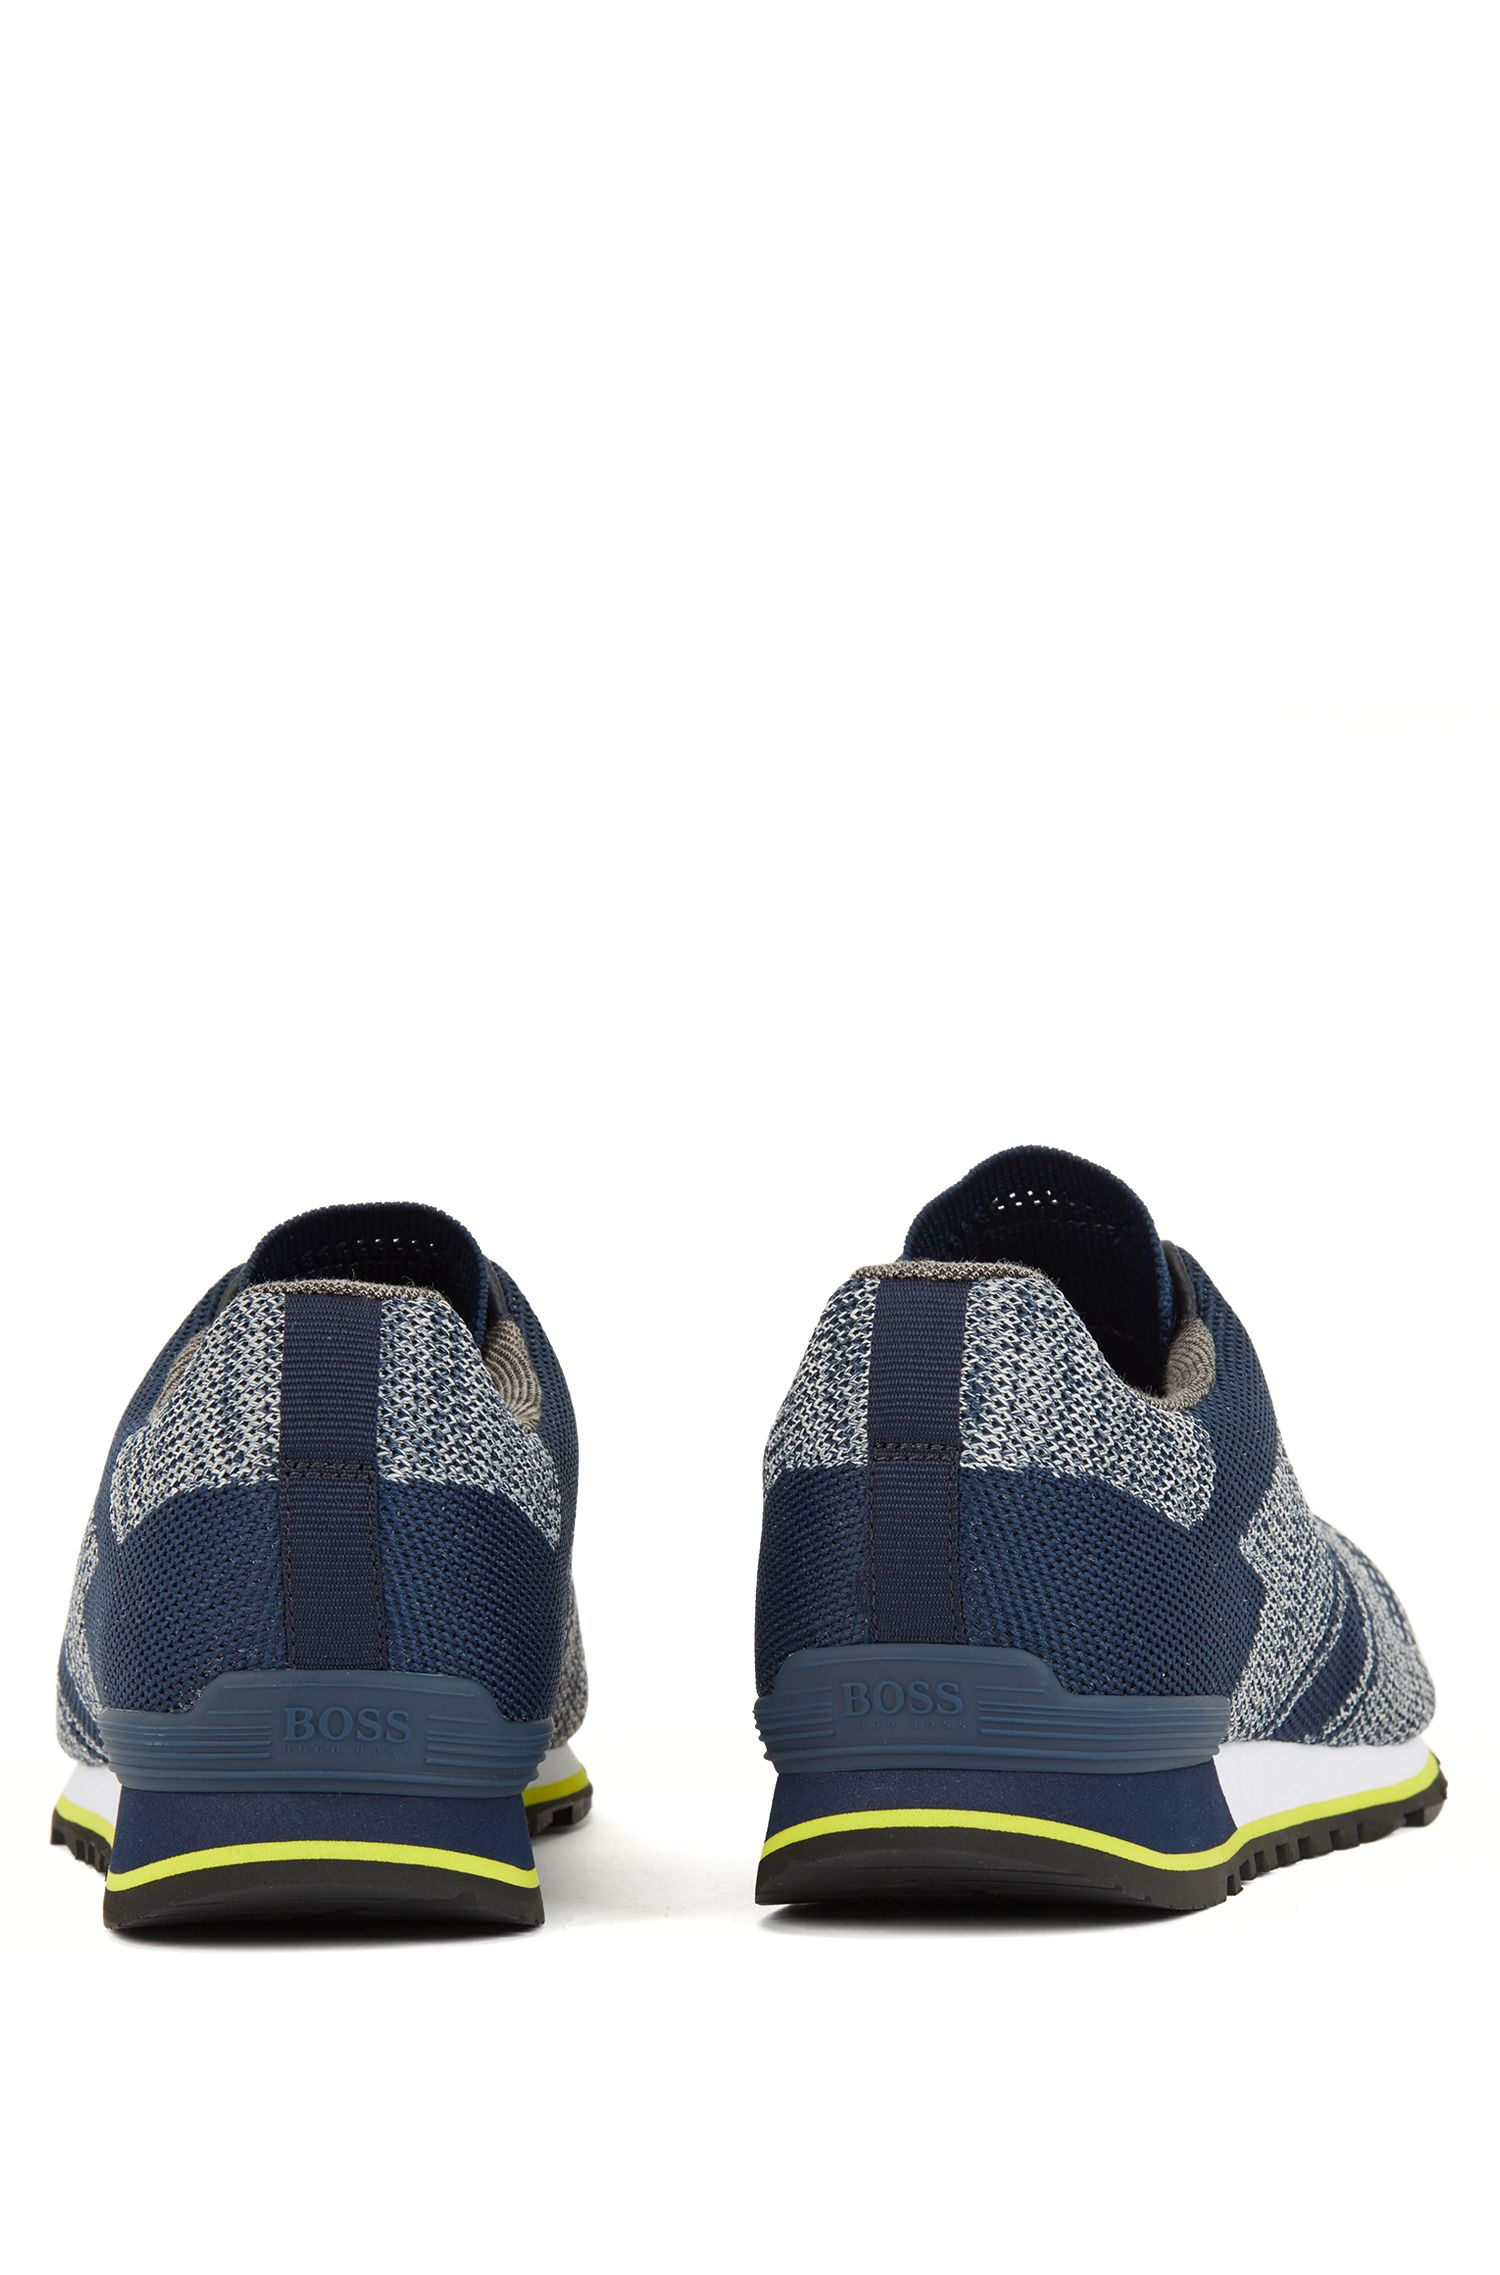 Running-style trainers with multi-patterned knitted upper, Dark Blue